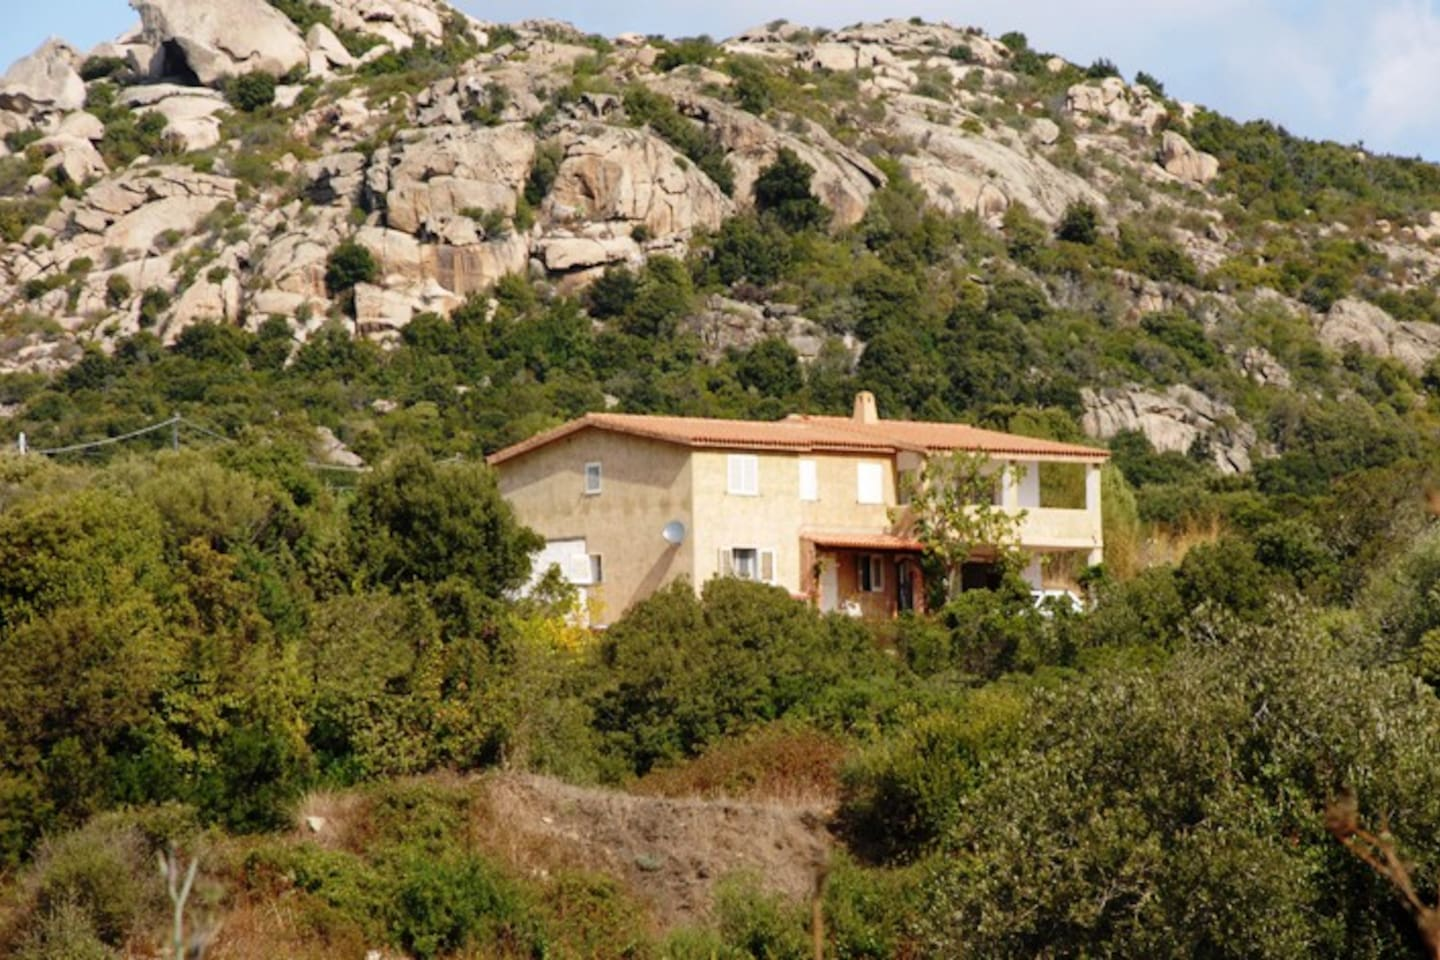 Aldo b&b - Enjoy Sardinia